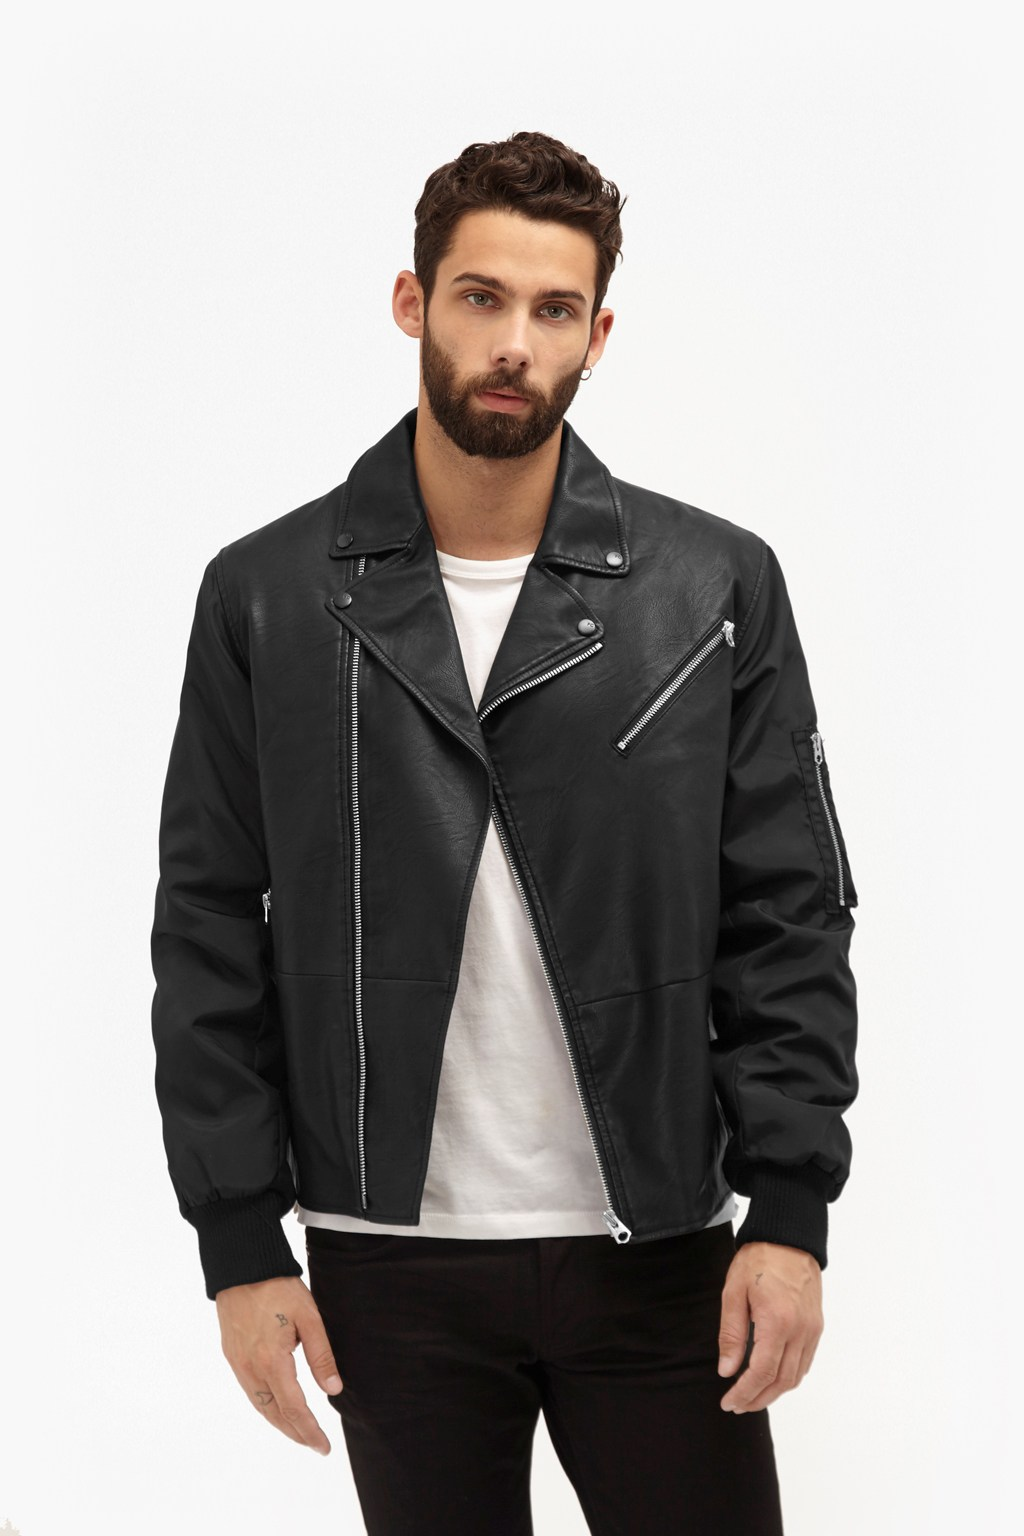 Over , items to choose from, all with fast delivery and up to 30% cheaper any other retailer. Designer clothes, shoes, bags & accessories from more than 1, luxury brands.